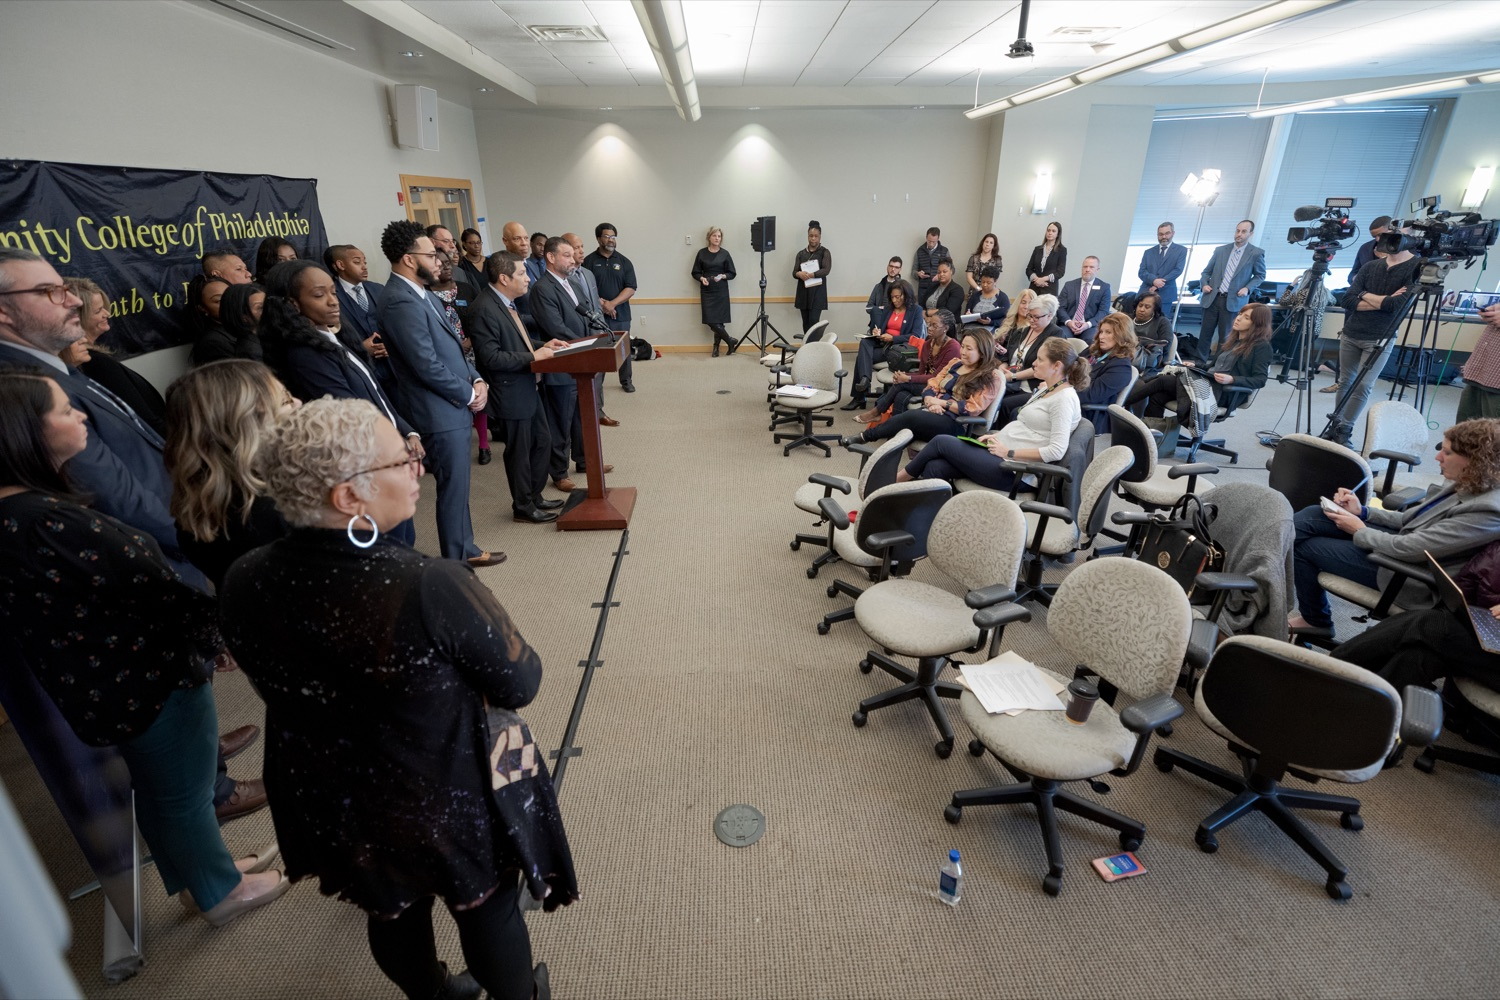 "<a href=""http://filesource.abacast.com/commonwealthofpa/photo/17592_EDU_Aspiring_NK_016.JPG"" target=""_blank"">⇣ Download Photo<br></a>Noe Ortega, Pennsylvania deputy secretary for post secondary and higher education, speaks during a press conference, announcing the School District of Philadelphia's new pilot program, Aspiring to Educate, that aims to cultivate and diversify the citys educator pool, inside Community College of Philadelphia's Center for Business and Industry on Wednesday, November 20, 2019."